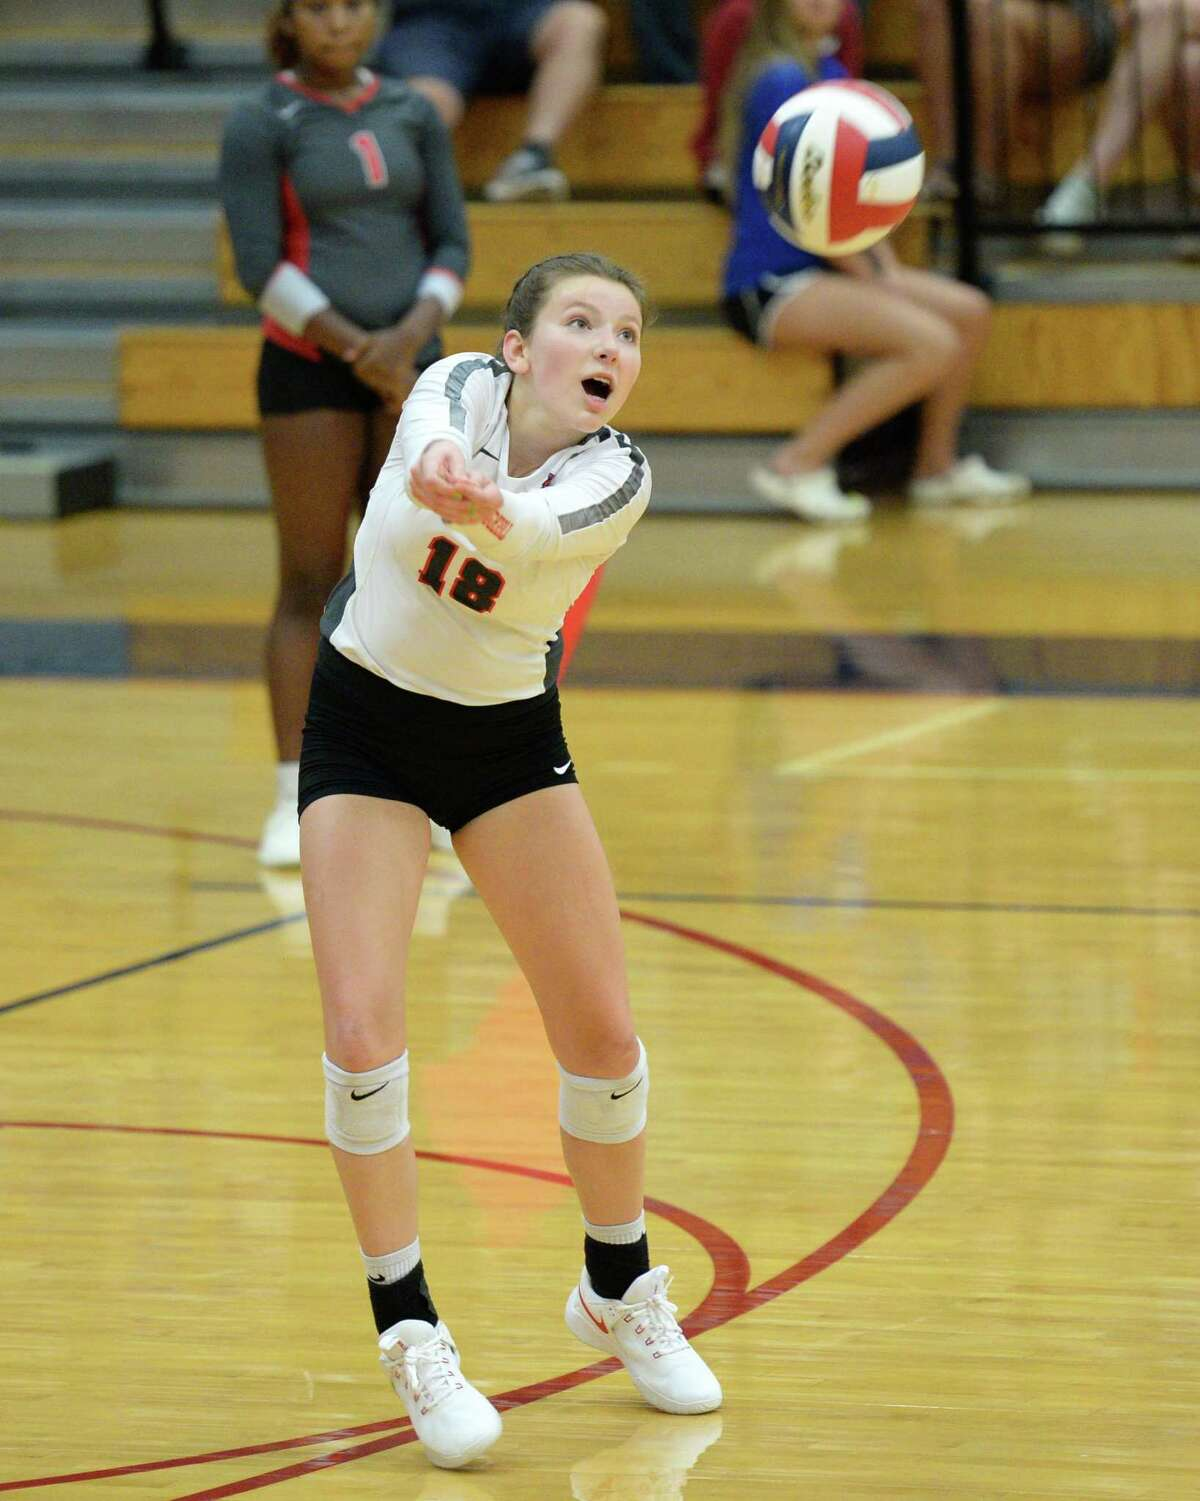 Kynzie Lilly (18) of Travis digs for a ball during the third set of a volleyball match between the Tompkins Falcons and the Travis Tigers on Tuesday, August 6, 2019 at the Travis HS, Katy, TX.